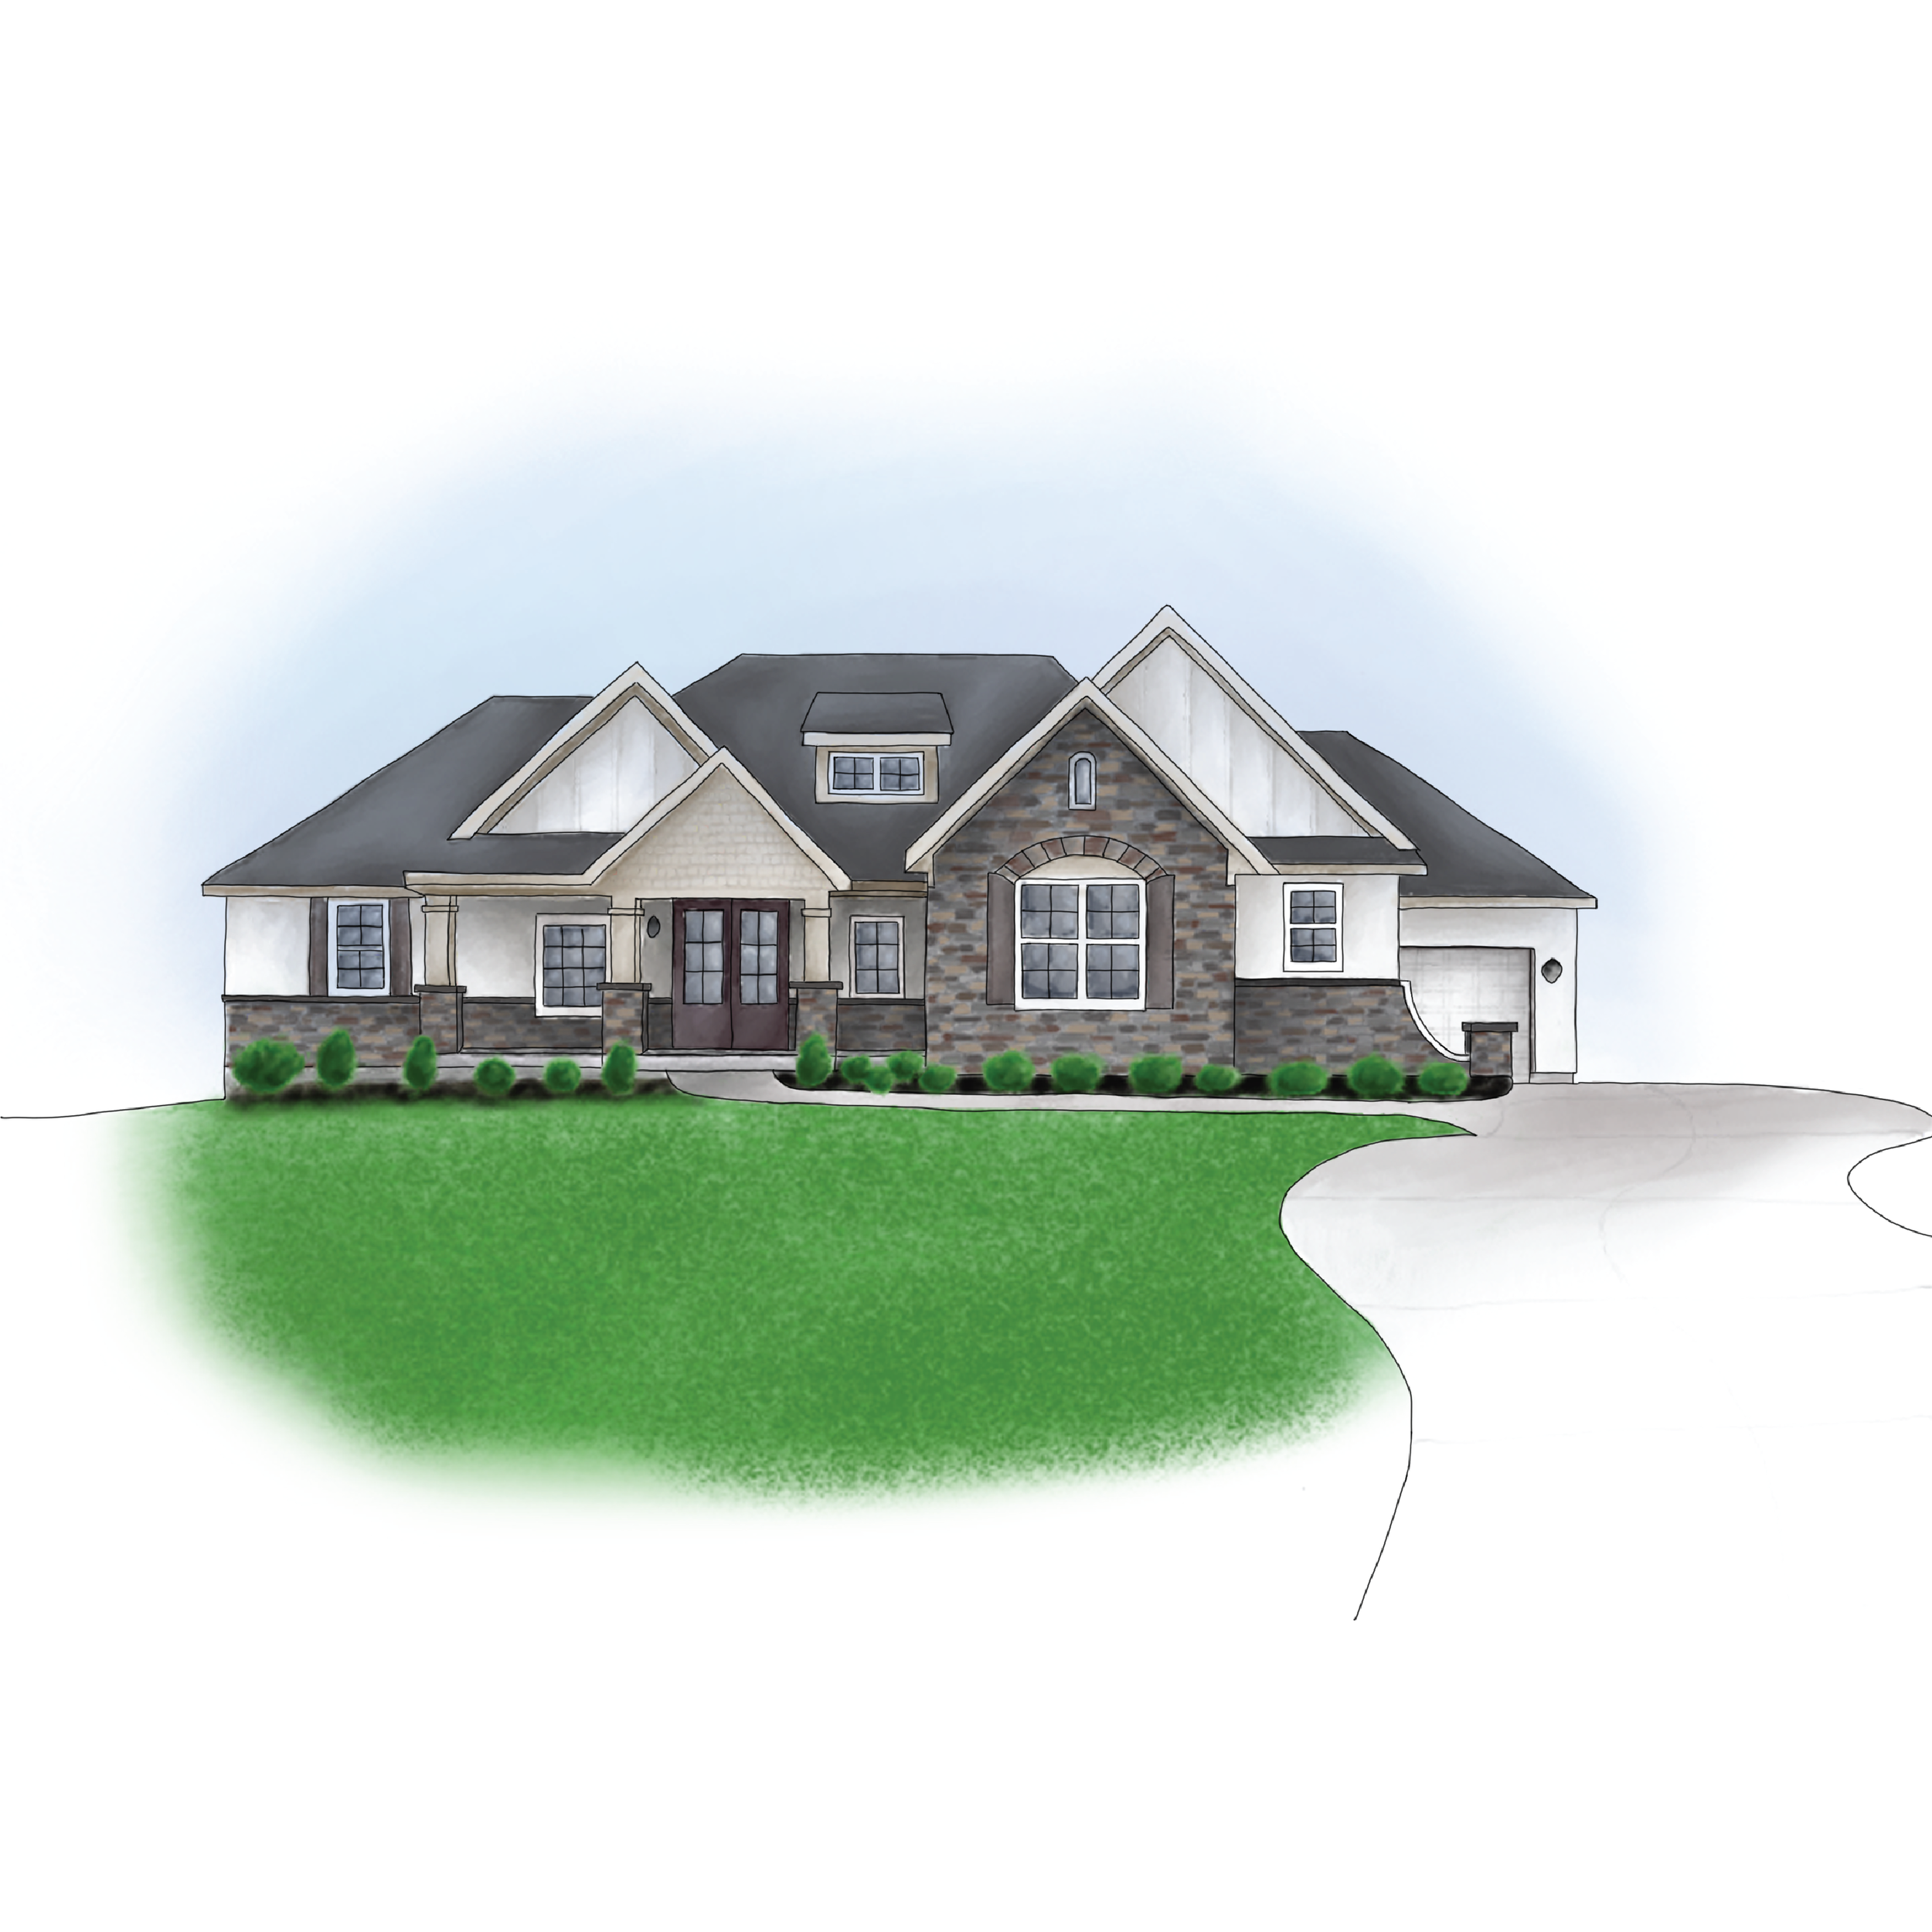 Custom home illustrations - click to see a gallery of home illustrations